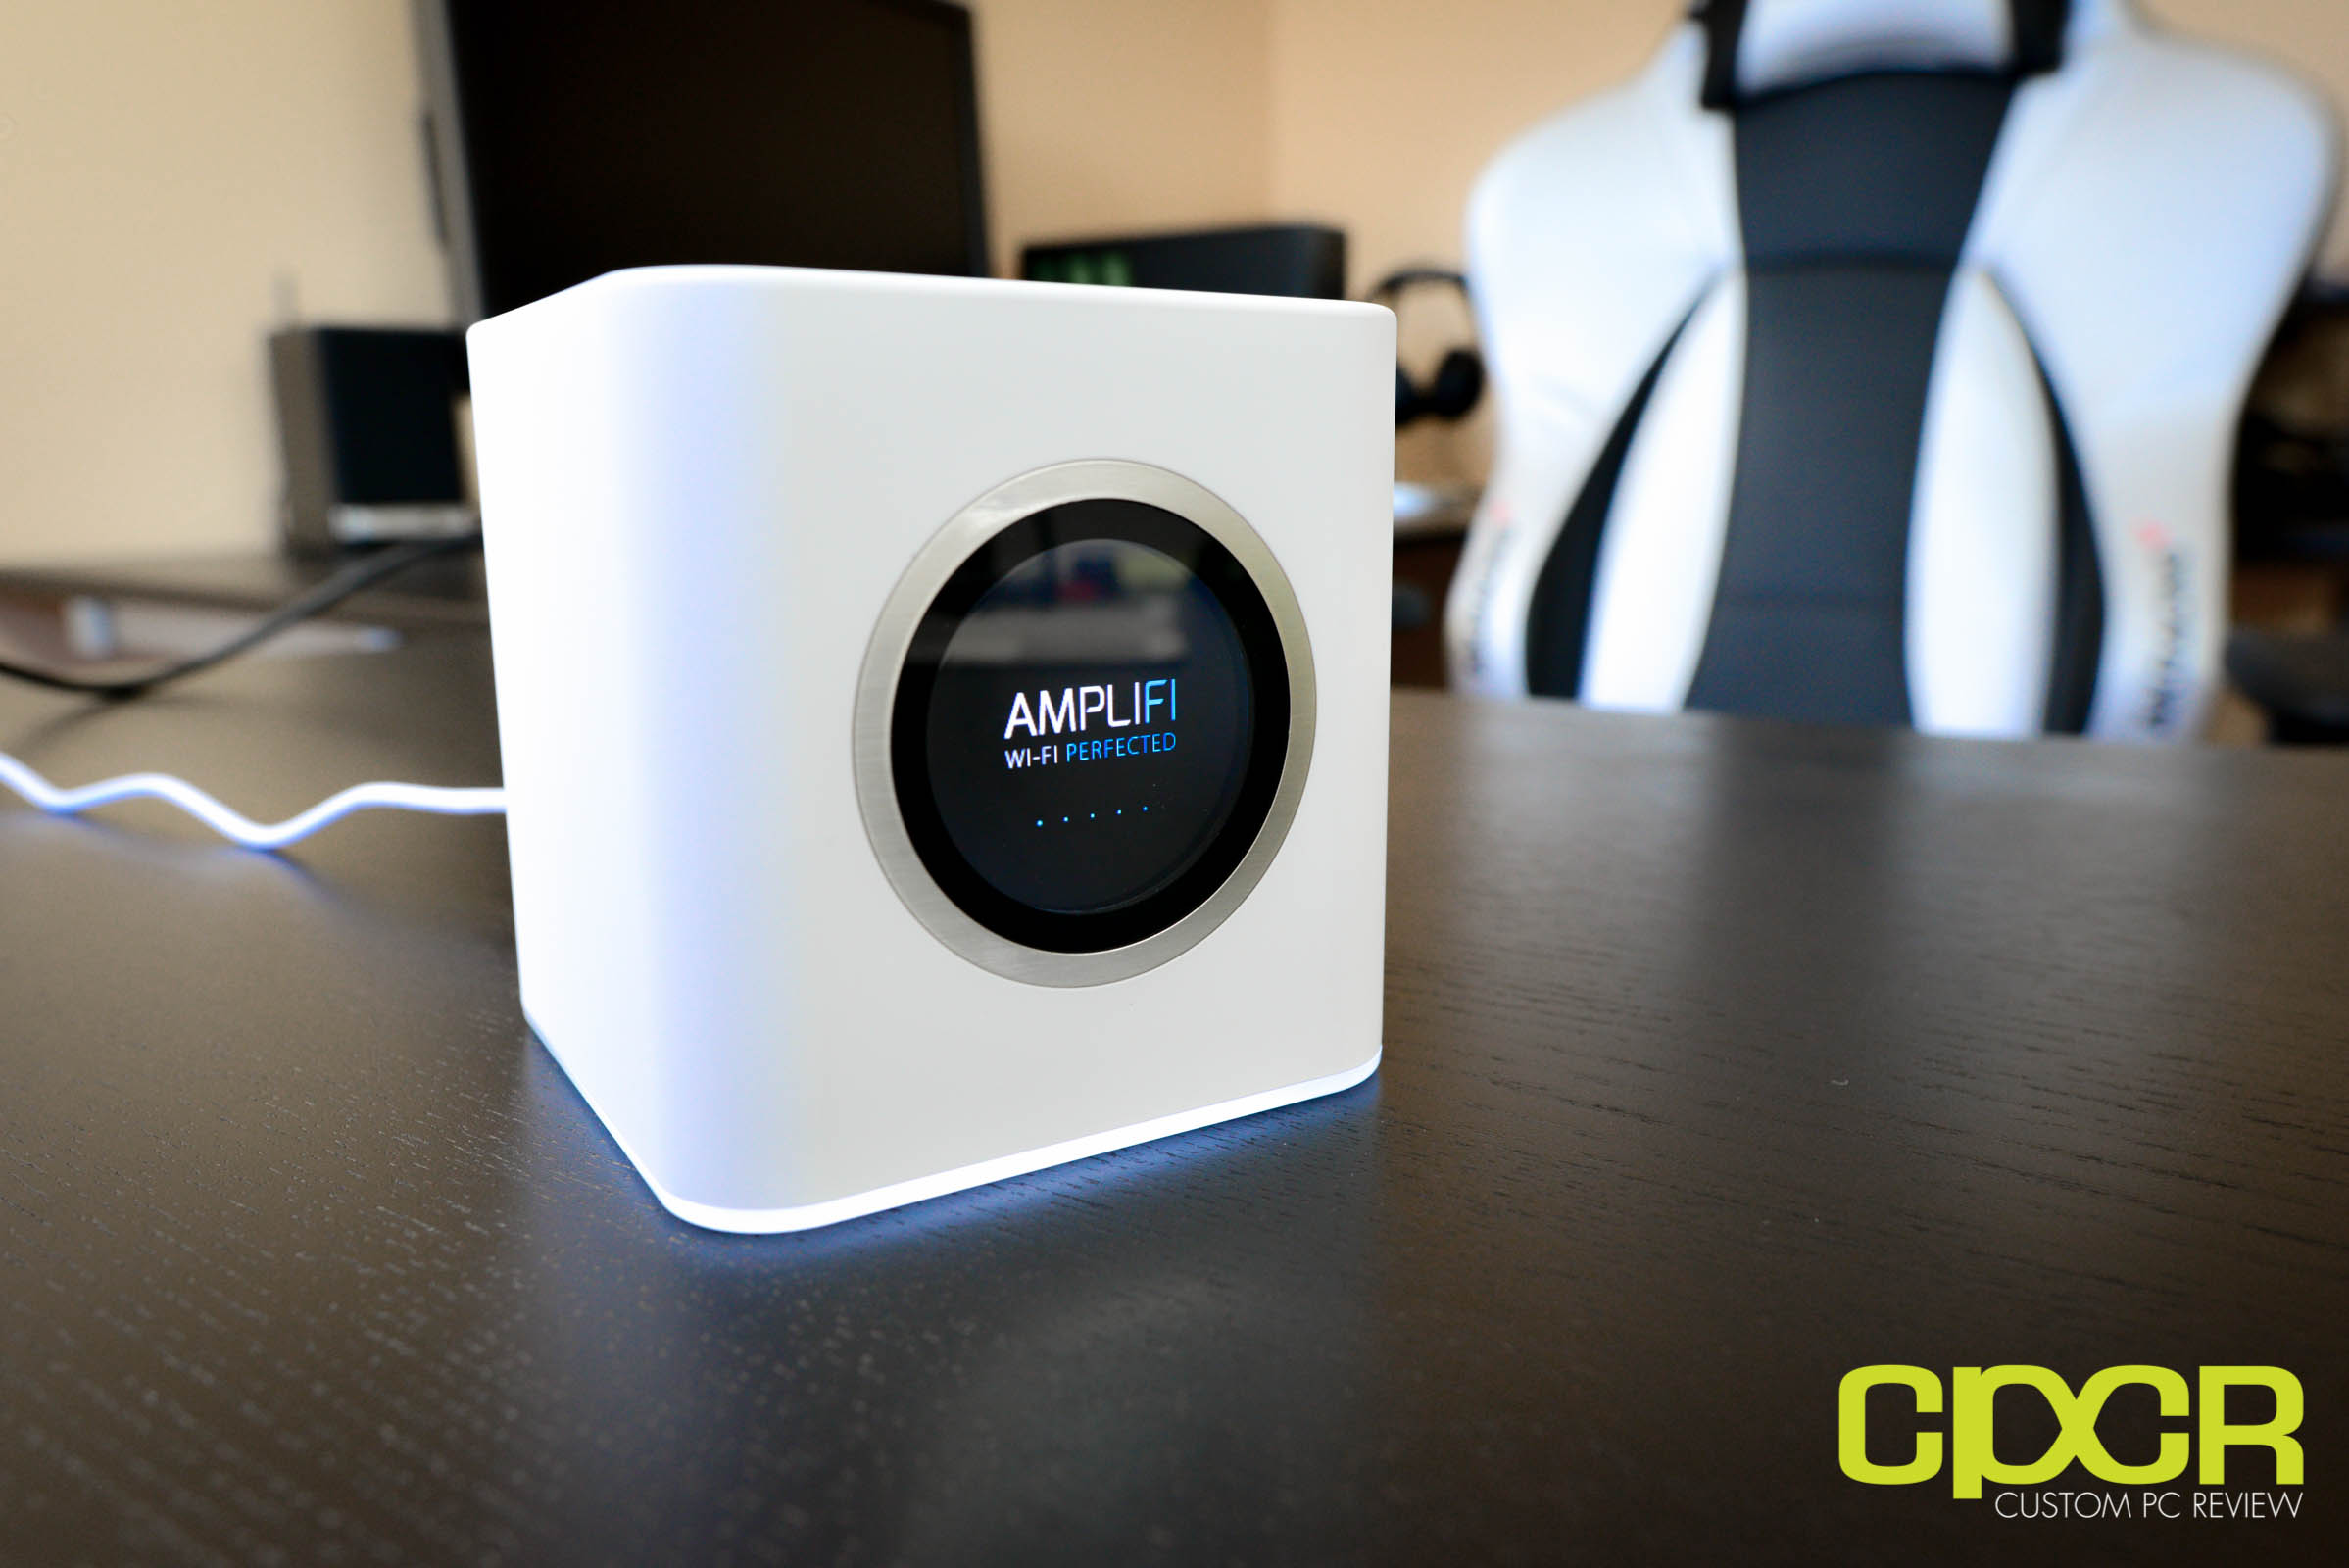 AMPLIFI AFi-R AmpliFi High Density Home Wi-Fi Router Sporttasche Rucksack